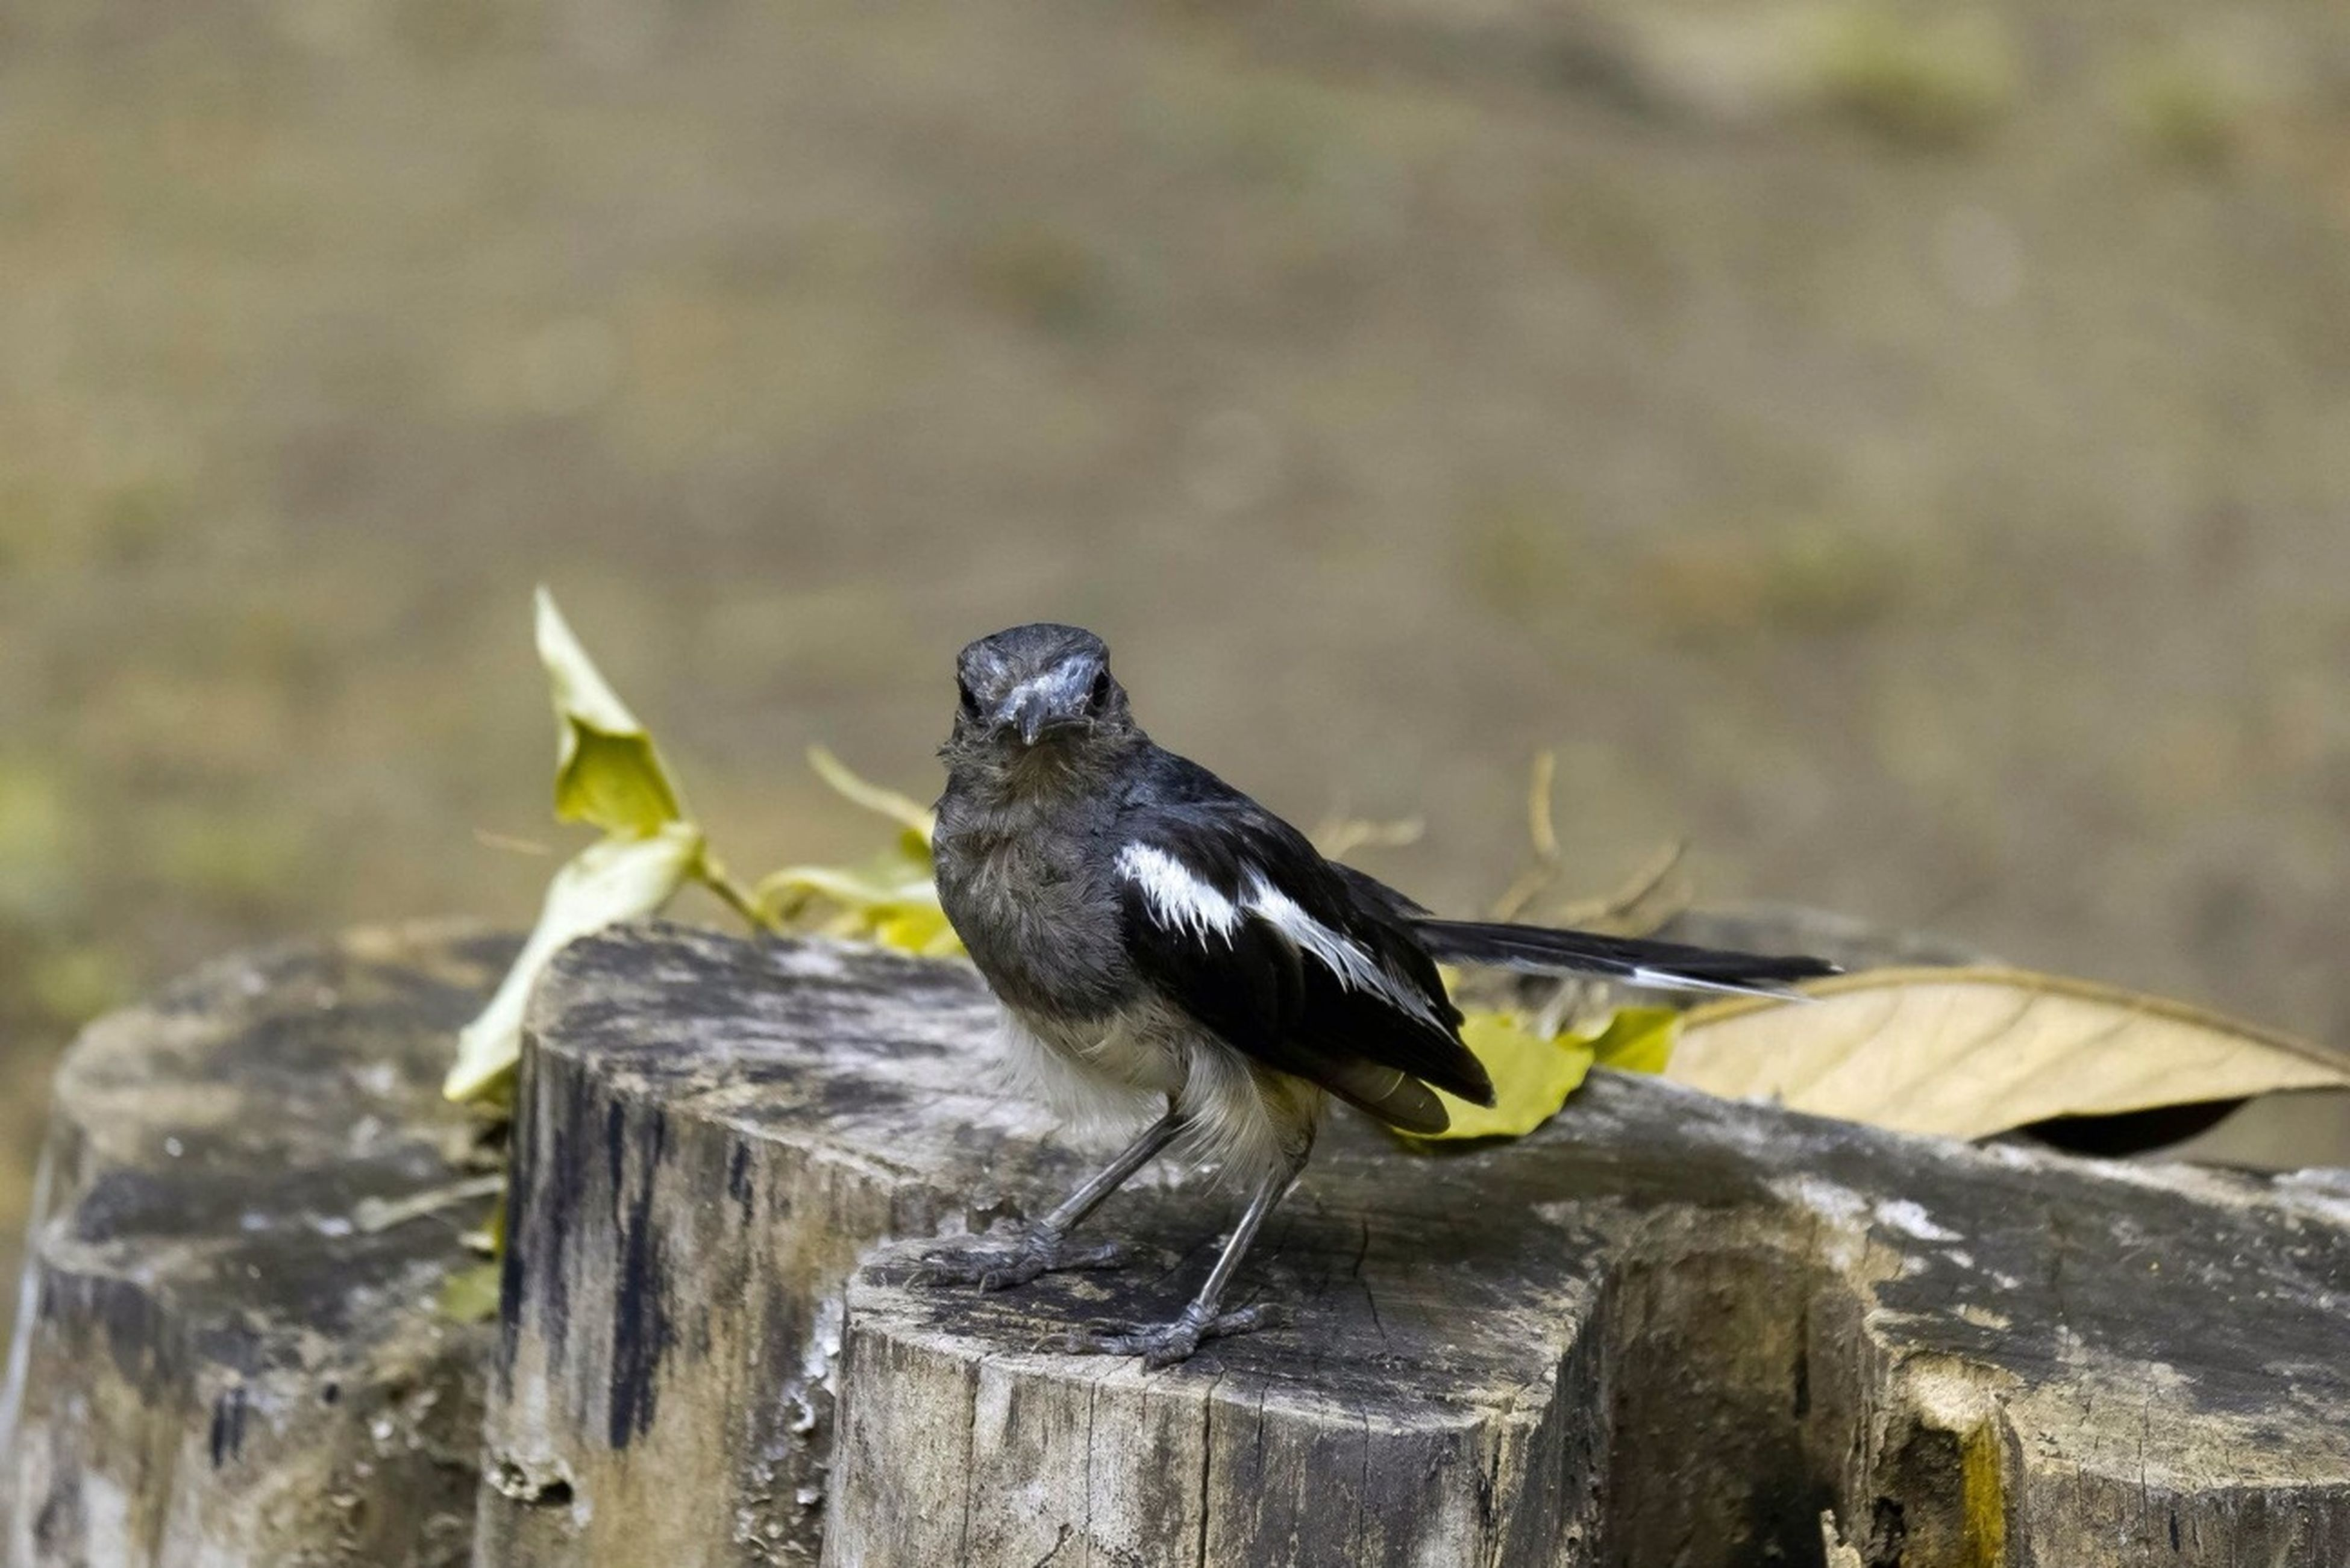 bird, animal themes, animals in the wild, one animal, wildlife, perching, focus on foreground, full length, close-up, nature, wood - material, outdoors, day, side view, no people, pigeon, beak, black color, beauty in nature, selective focus